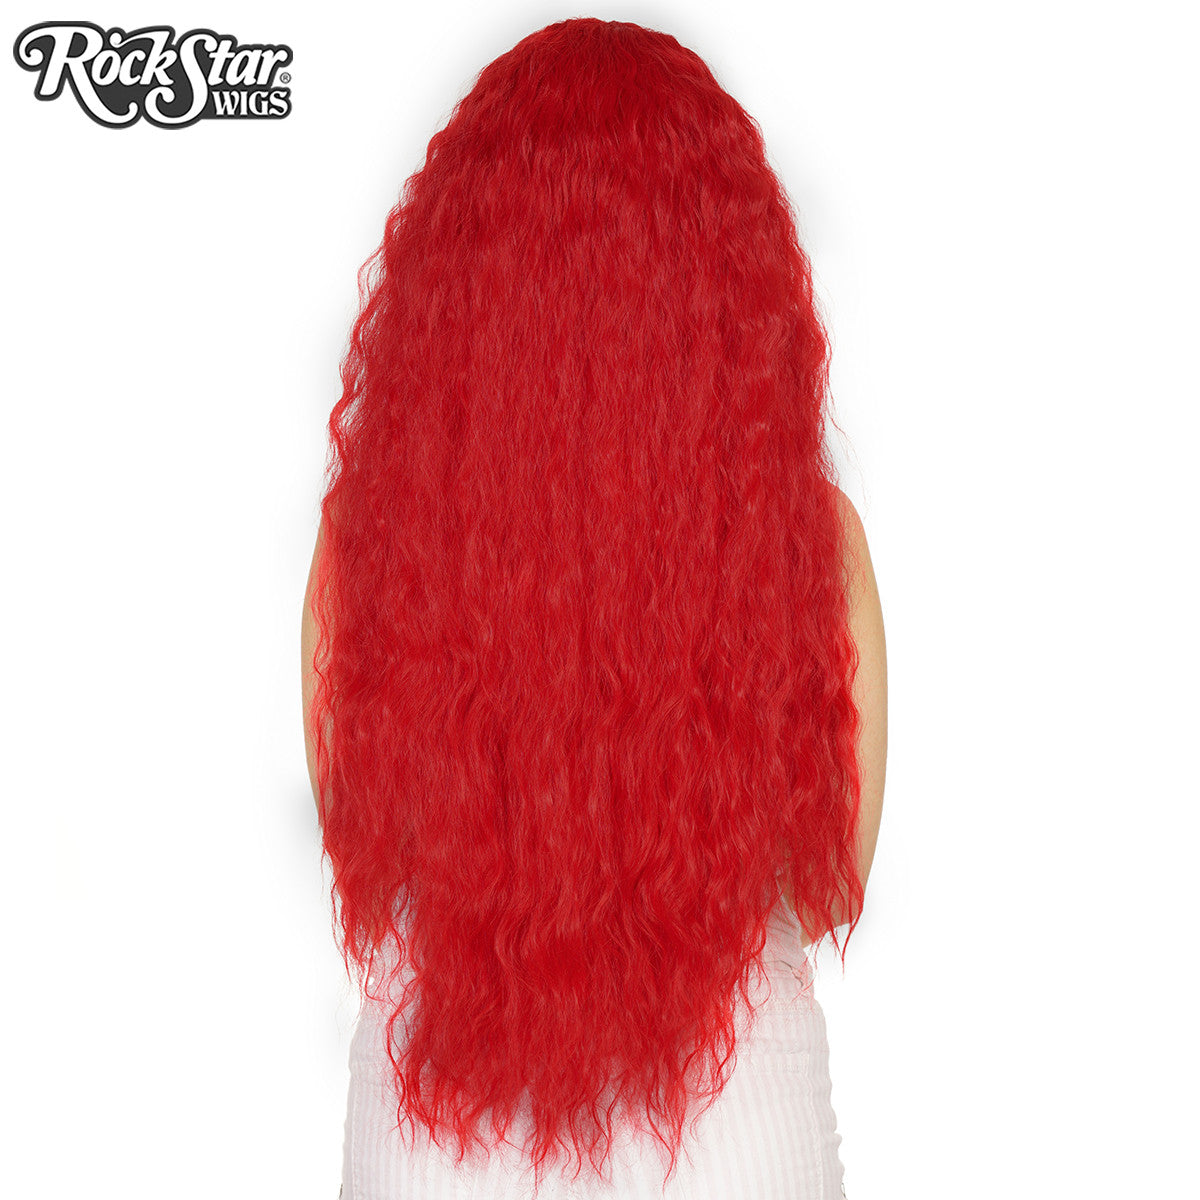 RockStar Wigs® <br> Prima Donna™ Collection - Opera Red -00215